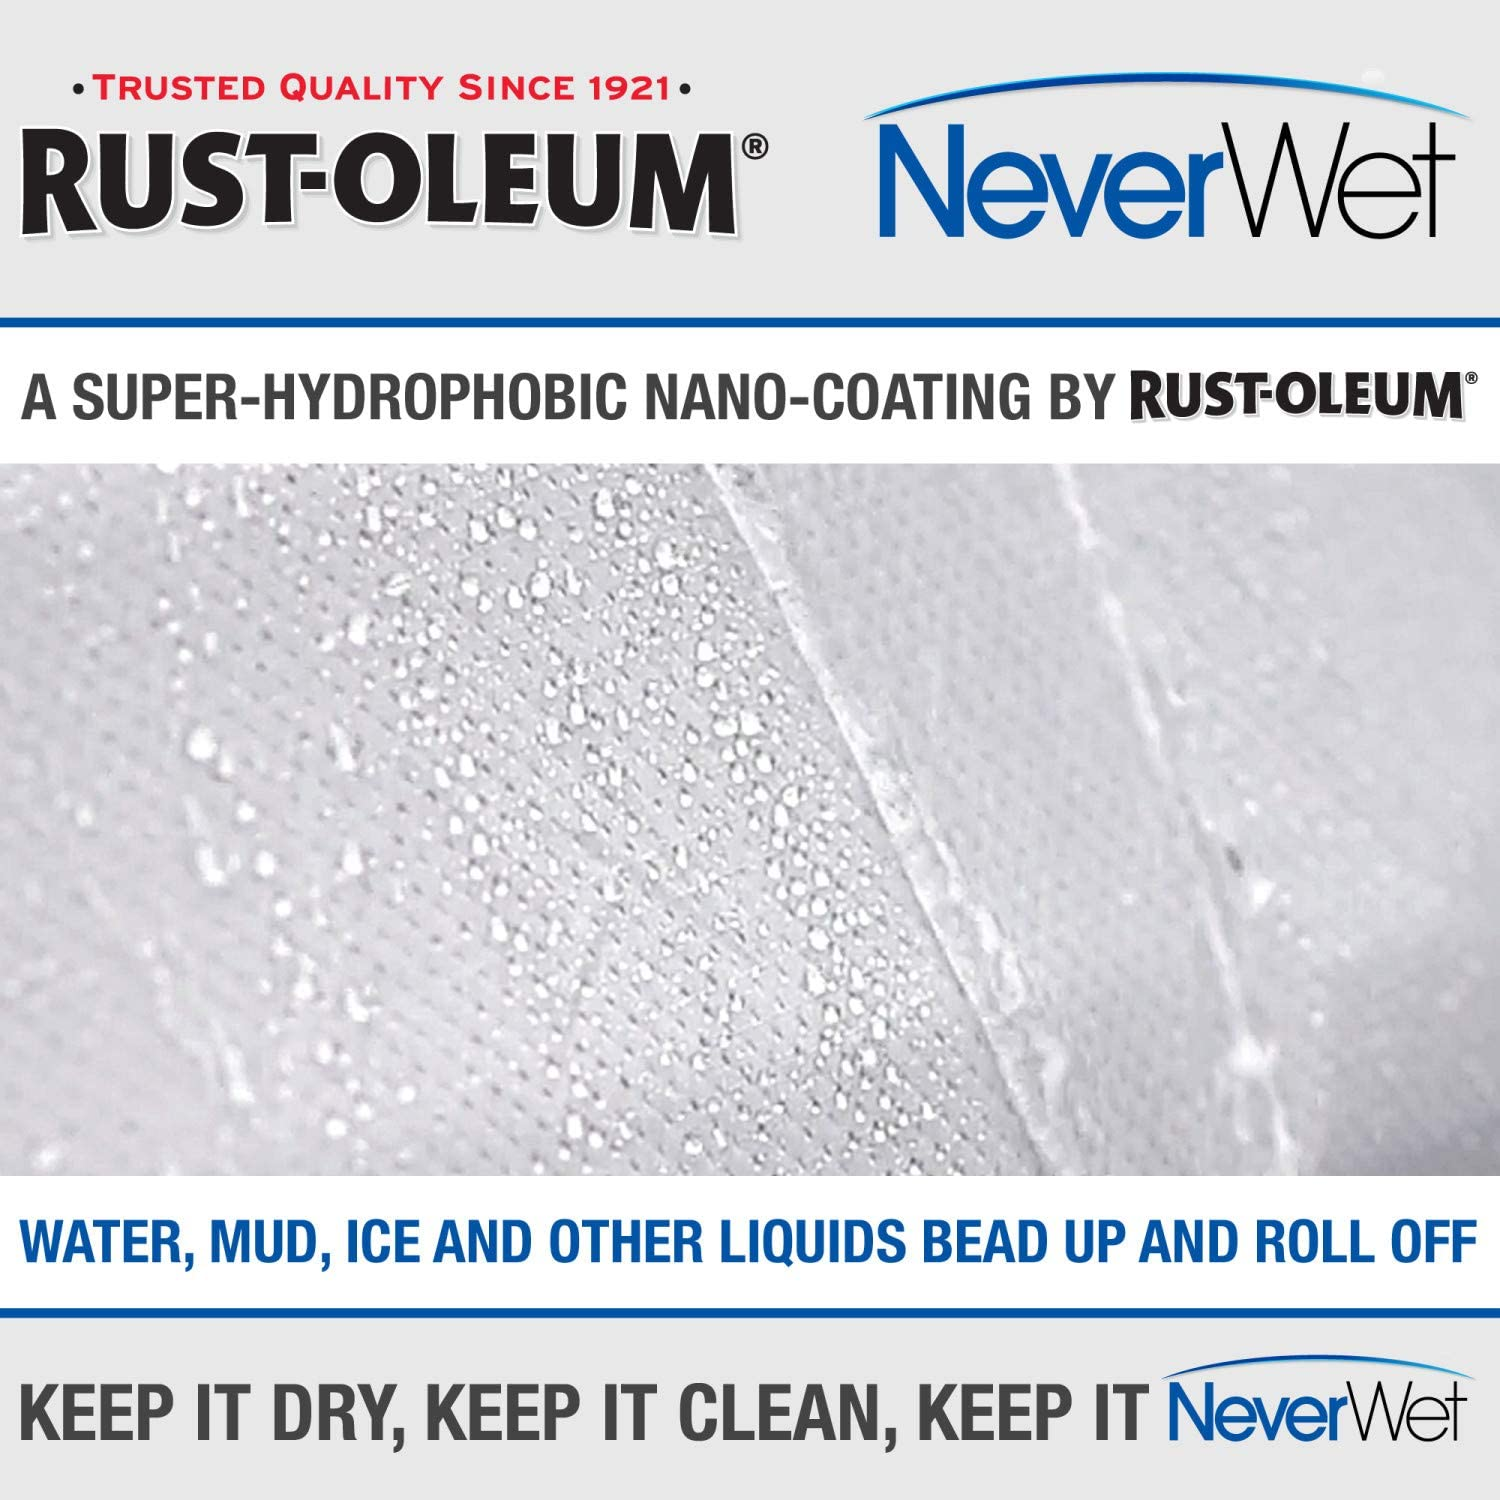 Budge RNWCSWF3 Rust-Oleum NeverWet Plus Station Wagon Cover Gray Size 3: Fits 18 100/% Waterproof Ultimate Outdoor Protection UV Treated Dustproof